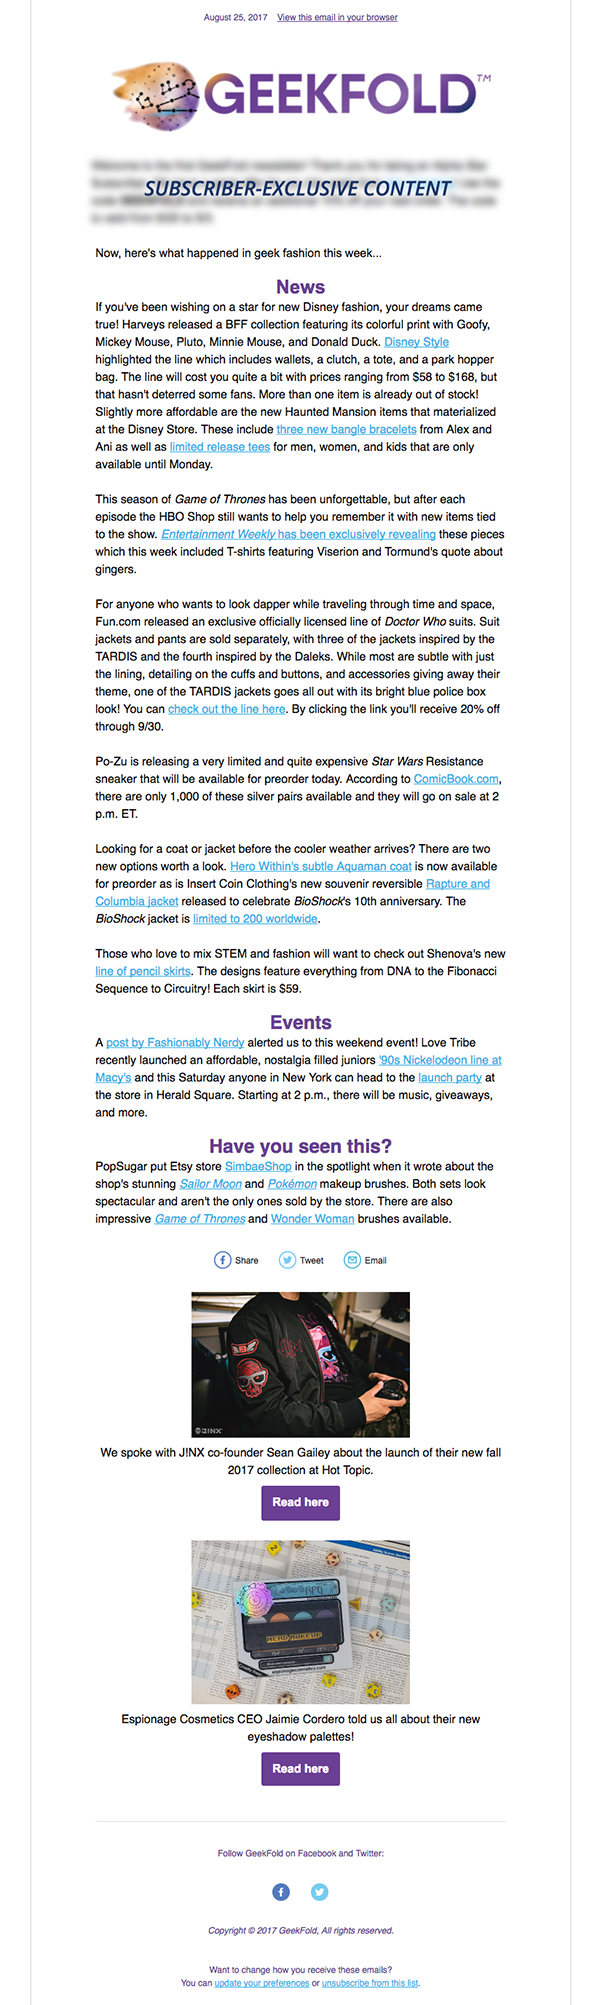 GeekFold Sample Newsletter